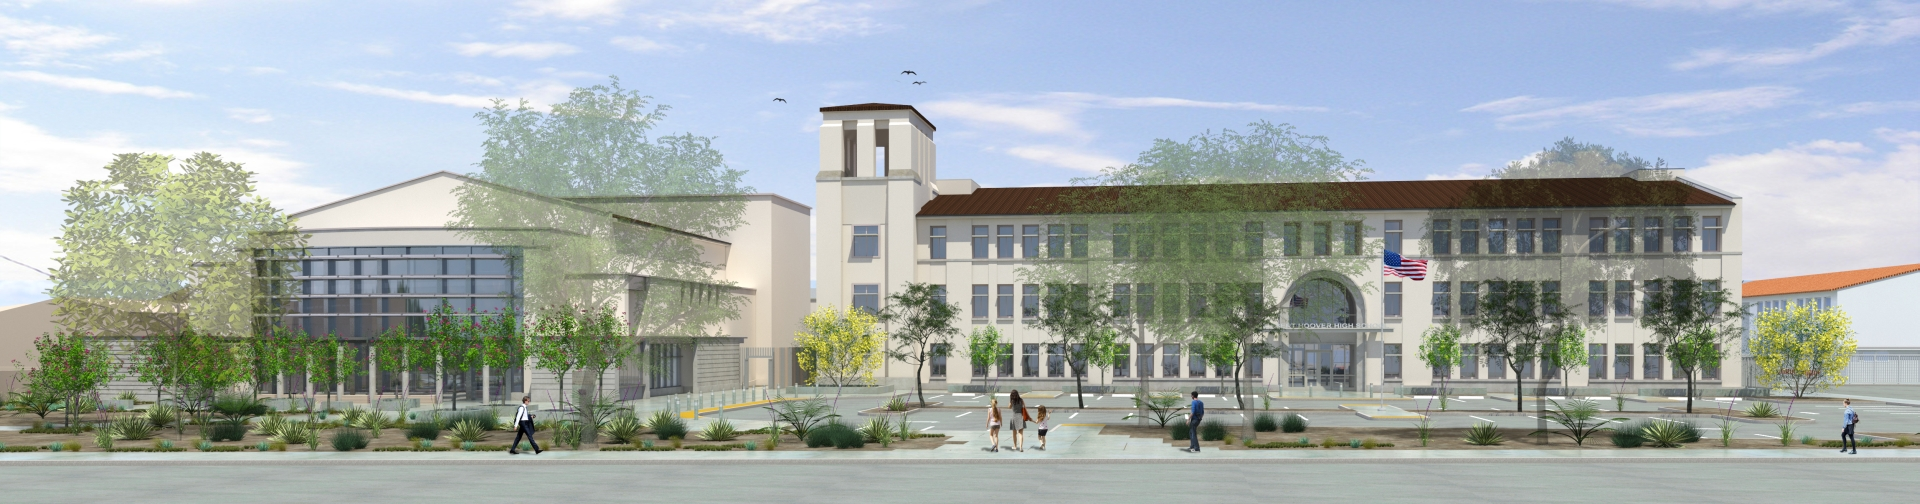 Rendering for the new buildings at Hoover High designed by AVRP Skyport